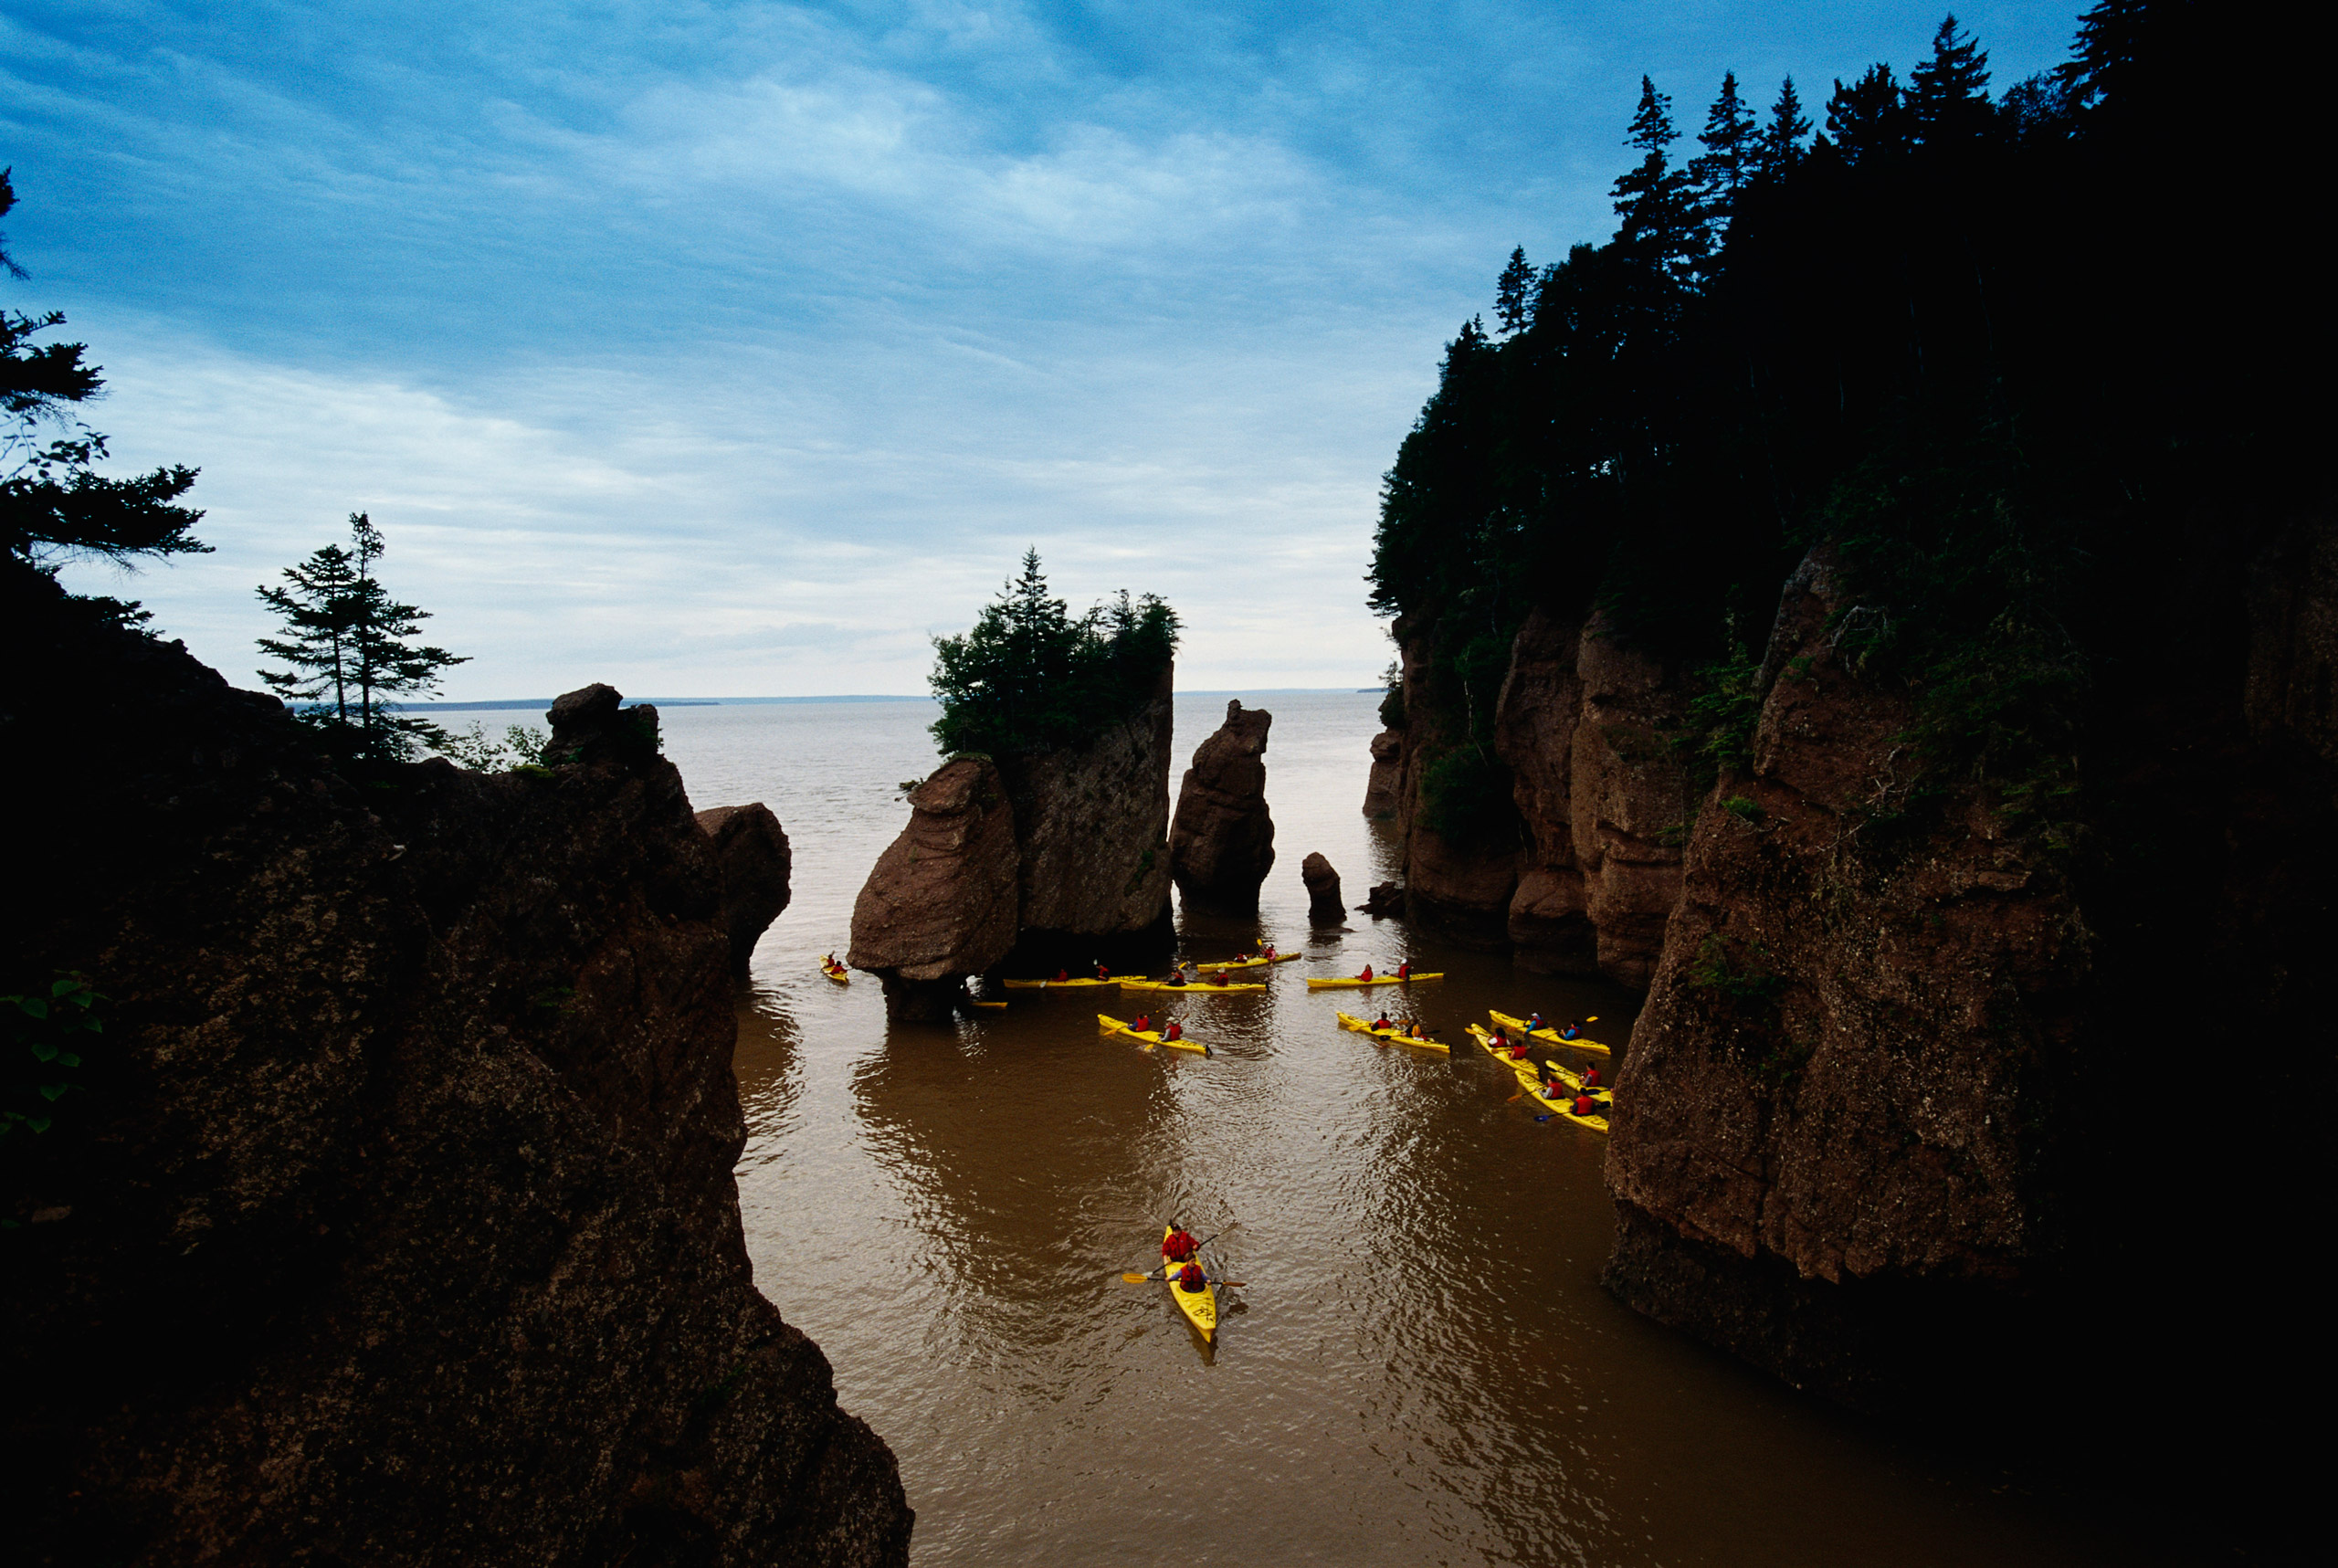 ca. 2002, New Brunswick, Canada, Canada --- Kayakers in the Bay of Fundy --- Image by © Richard T. Nowitz/CORBIS